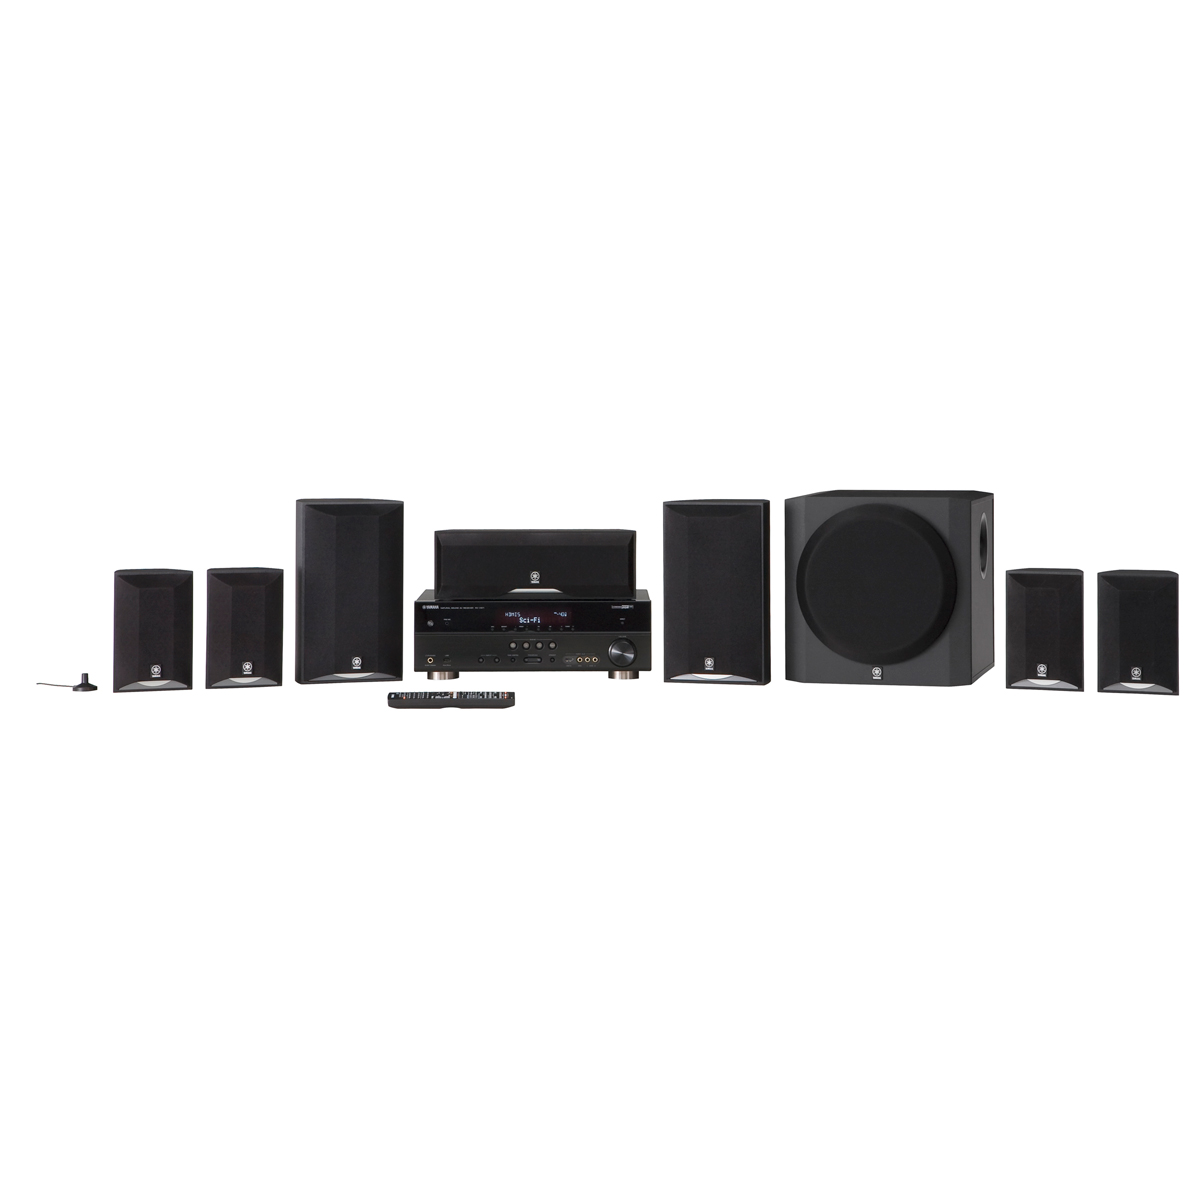 Yamaha YHT 895 Home Theater Surround Sound System 7 1 | eBay